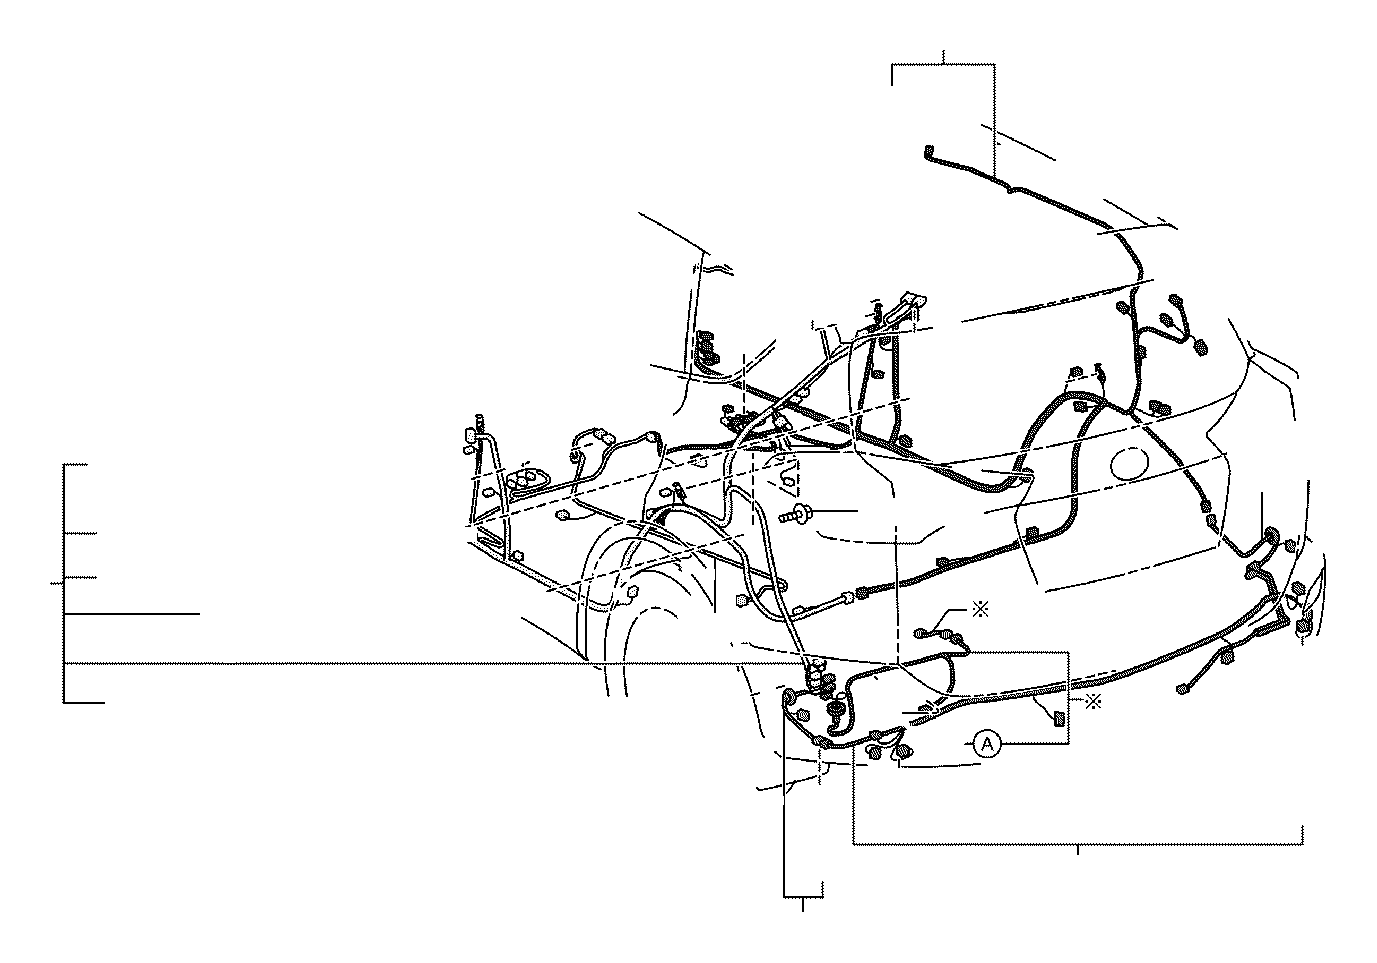 Toyota RAV4 Wire, luggage room, no. 2. Limd, cnd